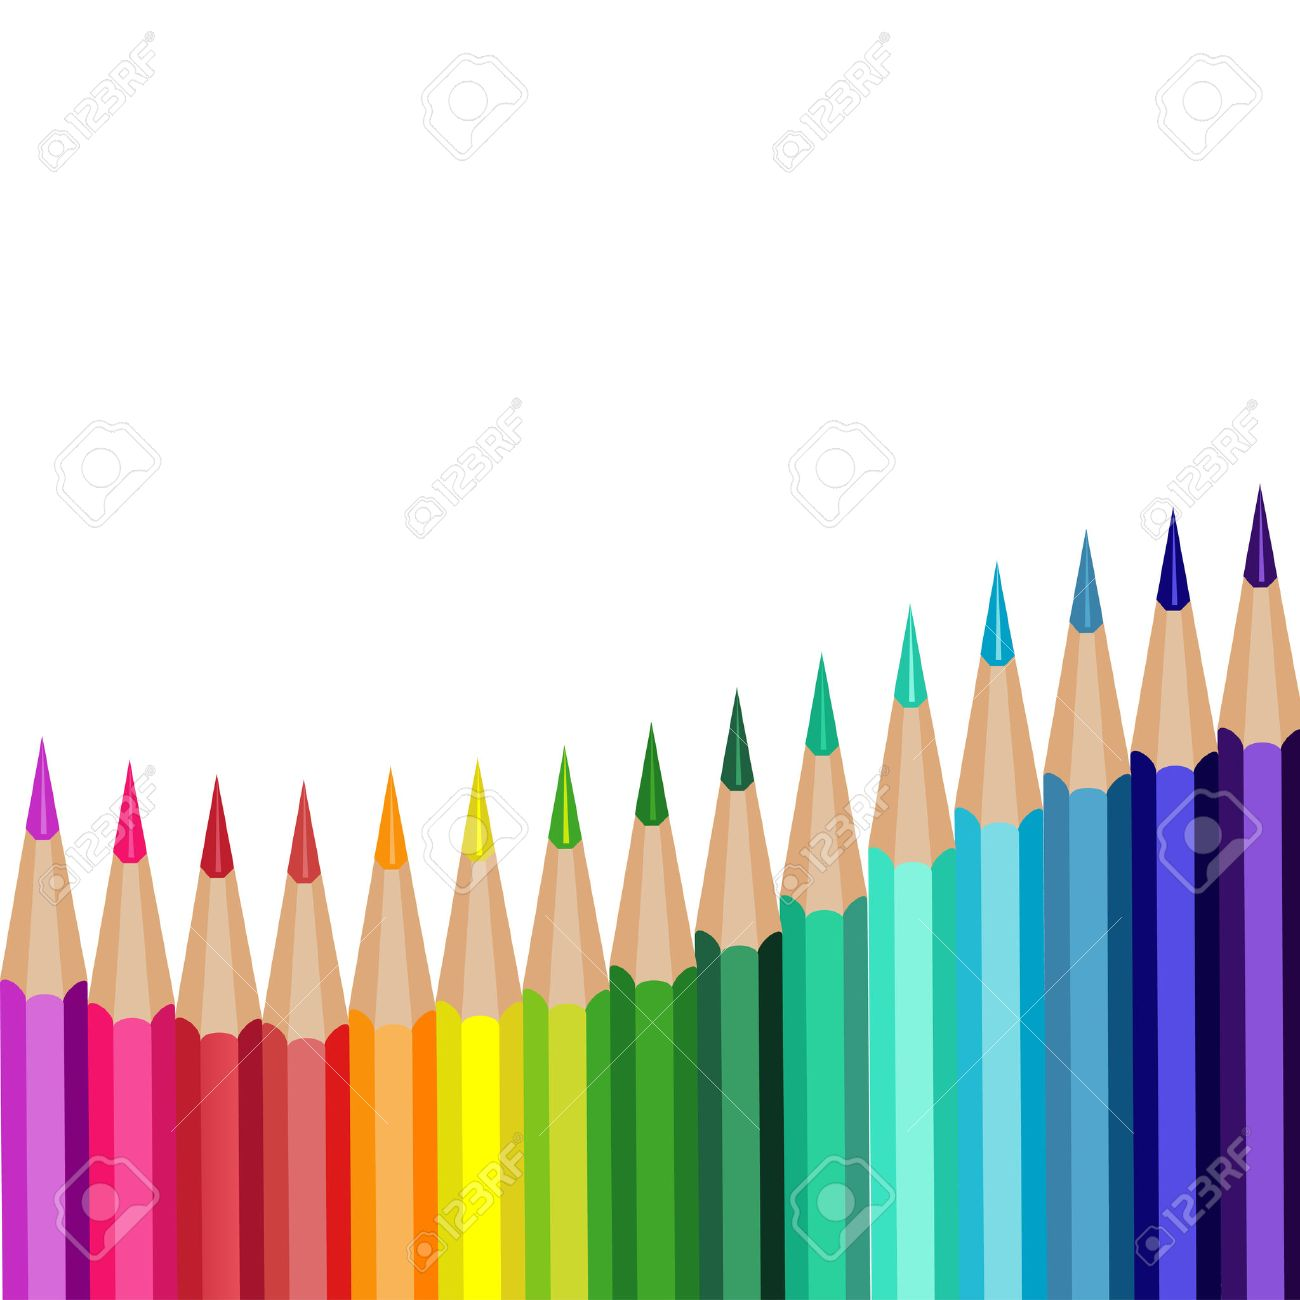 colored pencils lying in a row on a white background Stock Vector - 23120186